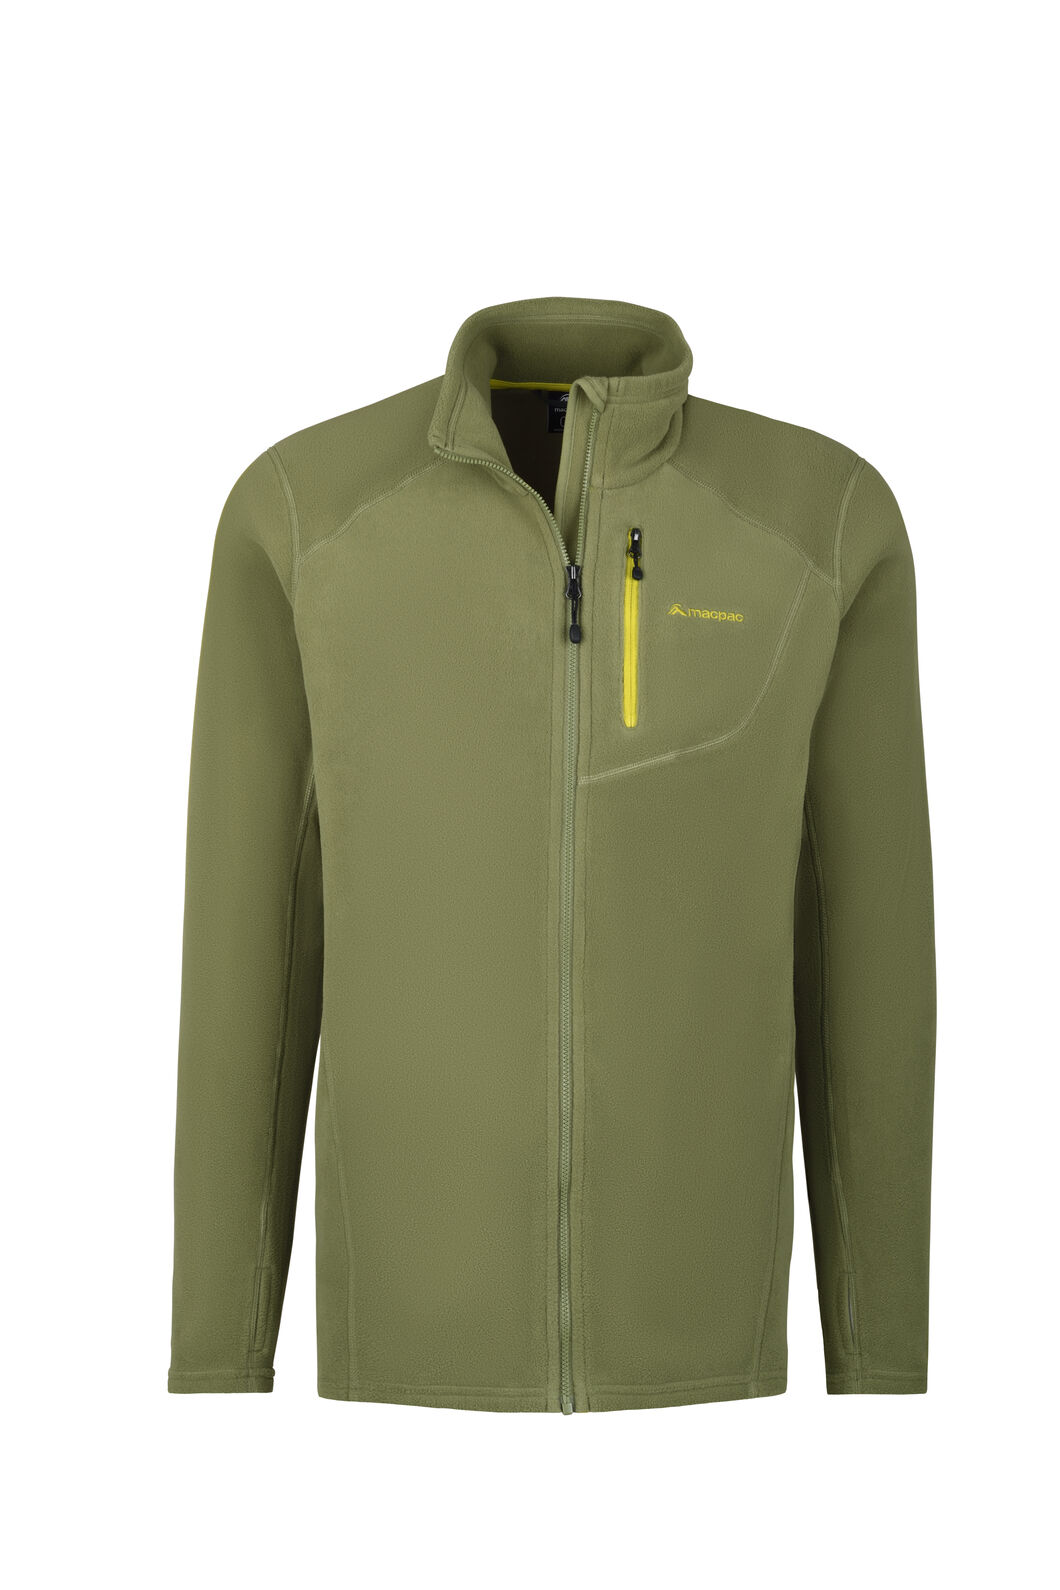 Macpac Kea Polartec® Micro Fleece® Jacket - Men's, Loden Green, hi-res